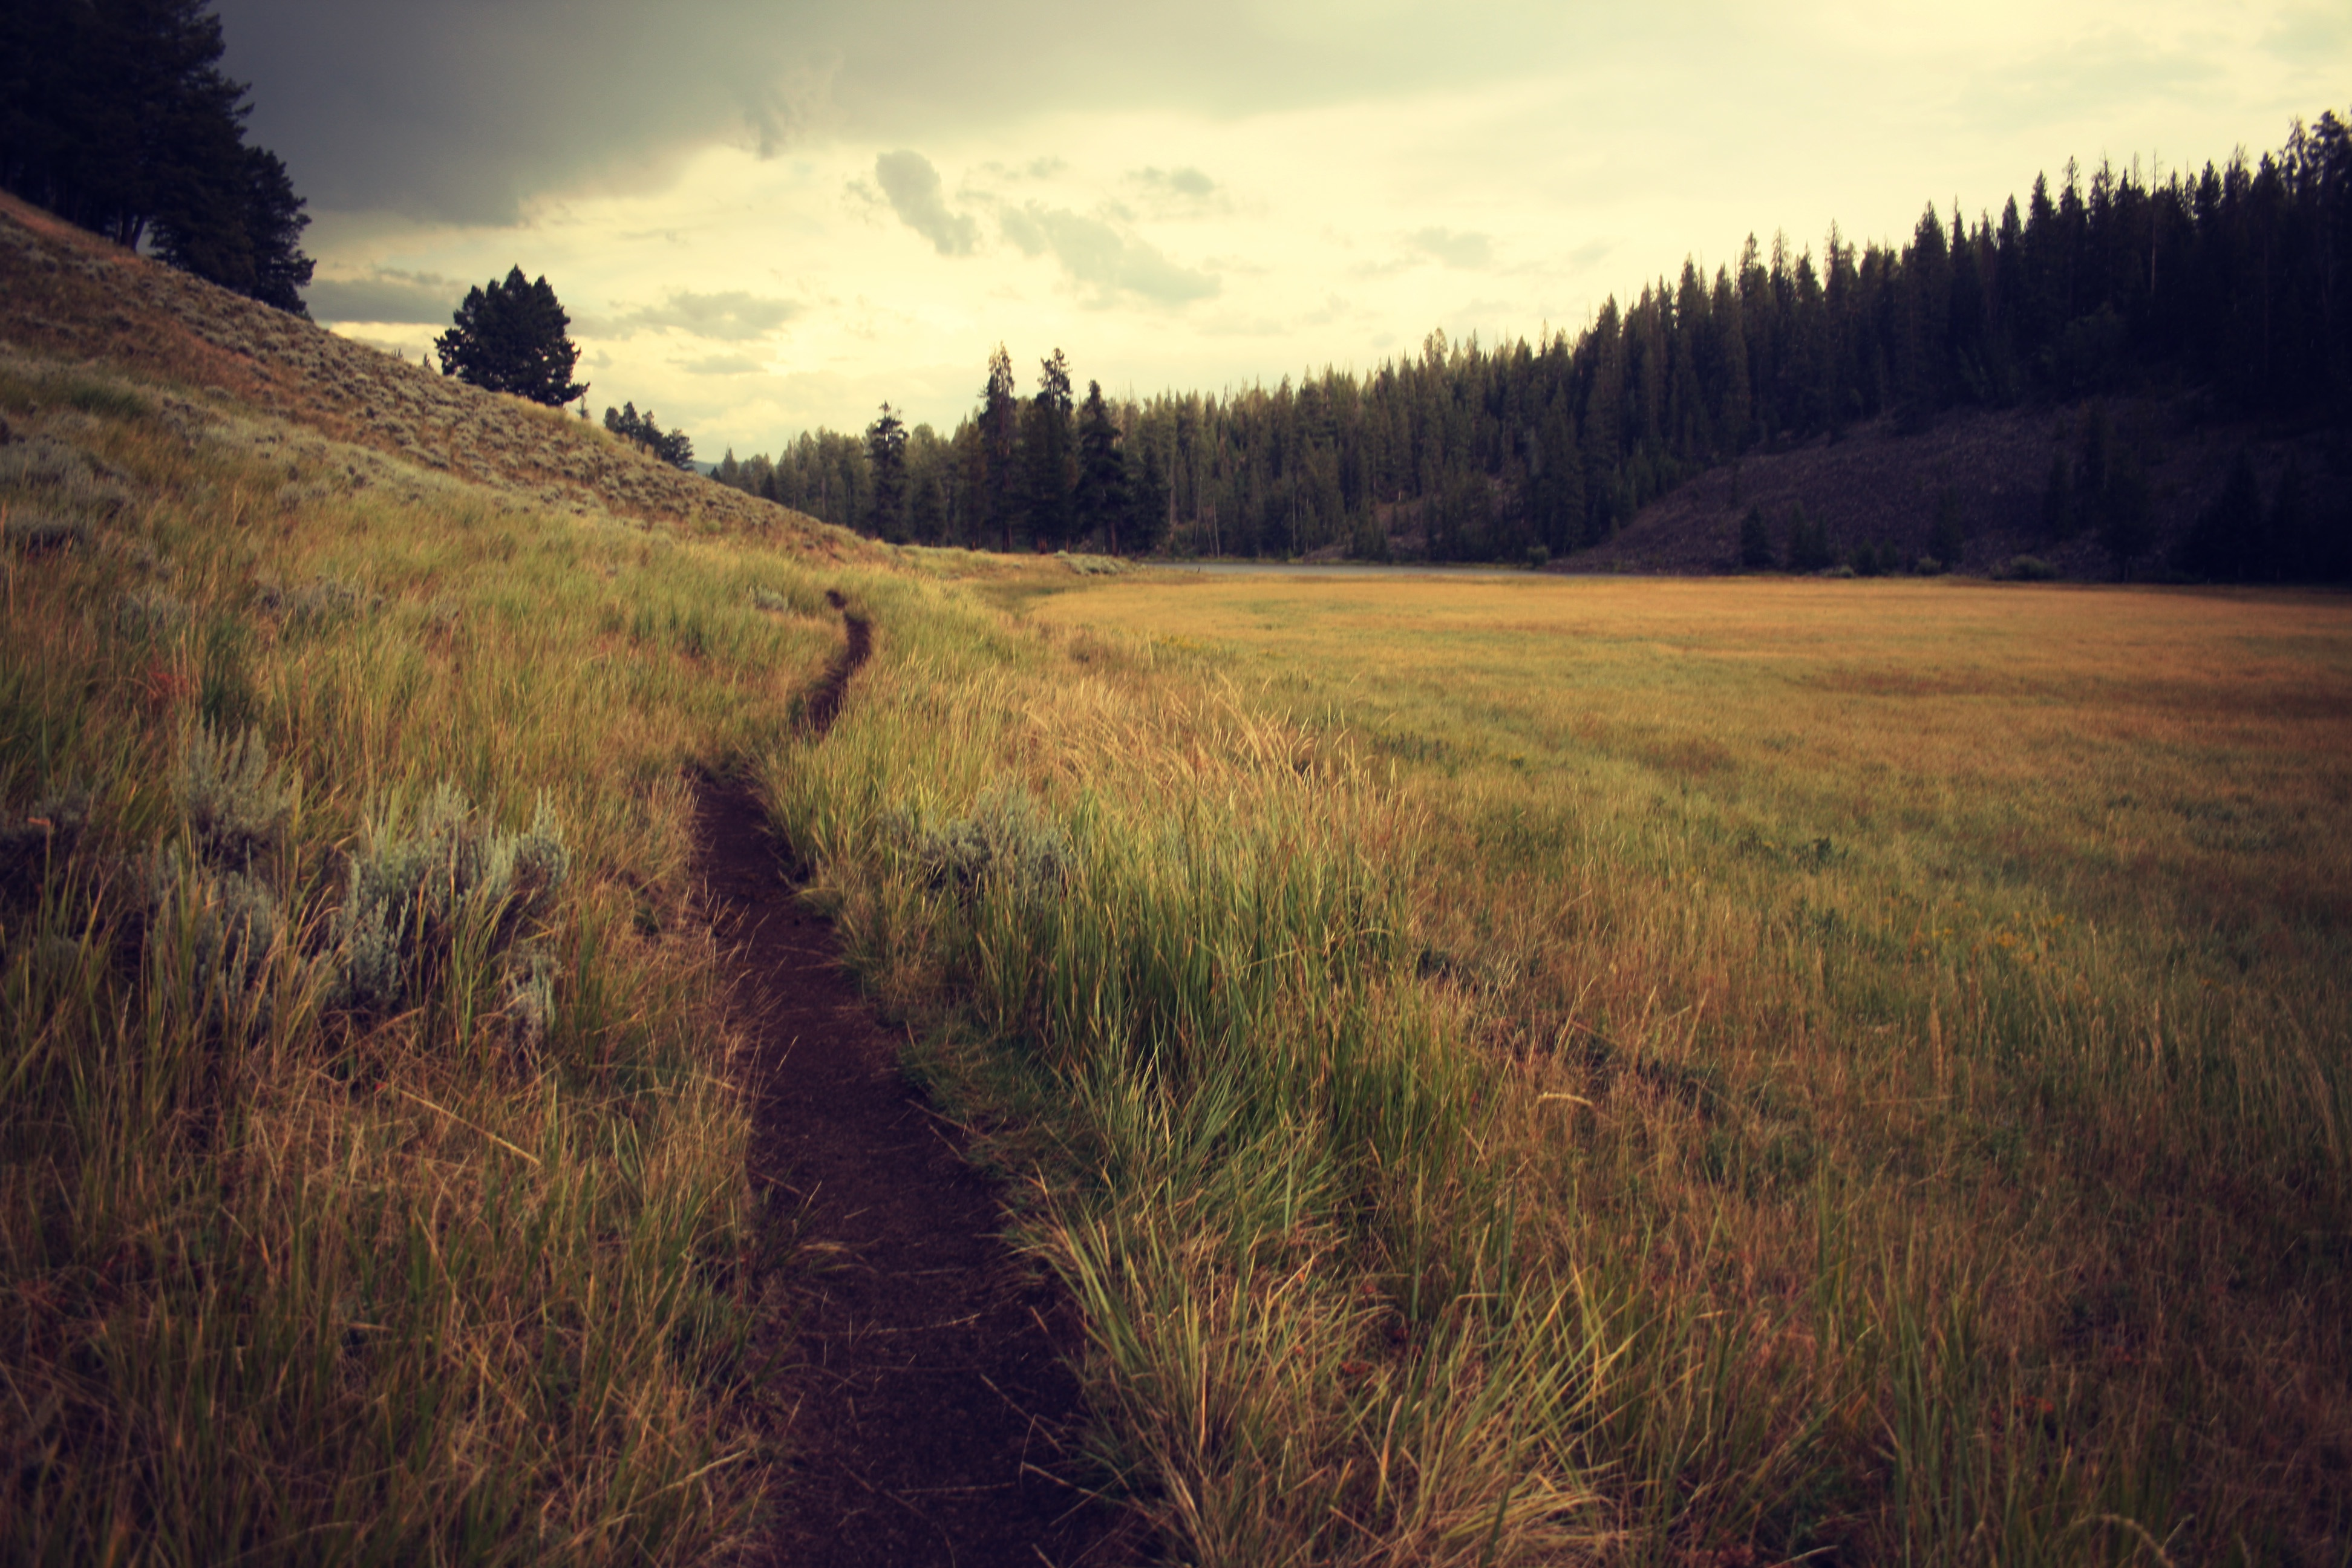 Trail running and its benefits